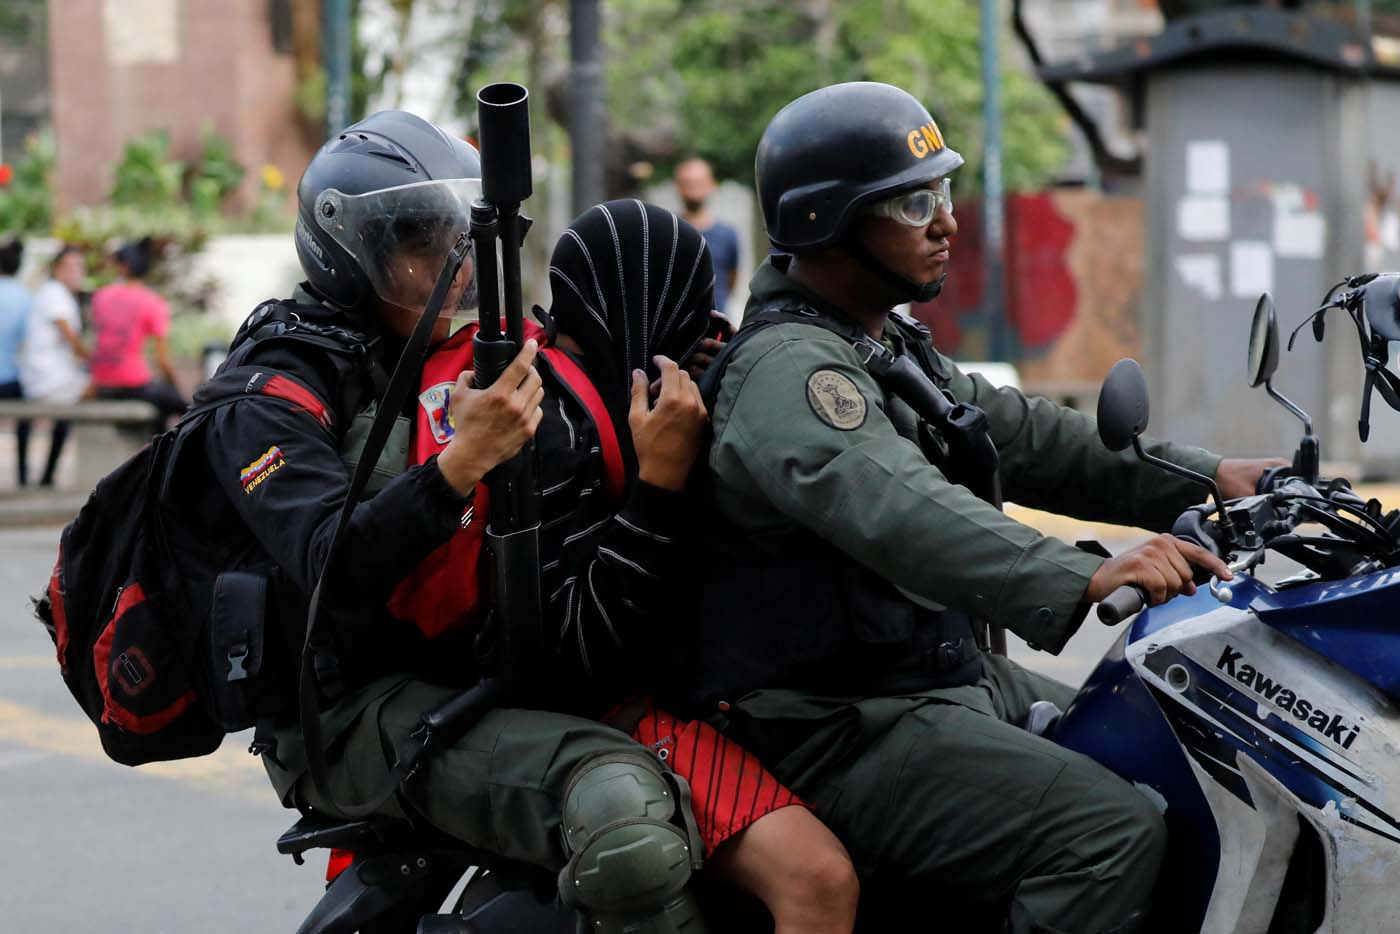 A demonstrator is detained by riot security forces during a protest against Venezuela's President Nicolas Maduro's government in Caracas, Venezuela June 14, 2017. REUTERS/Carlos Garcia Rawlins